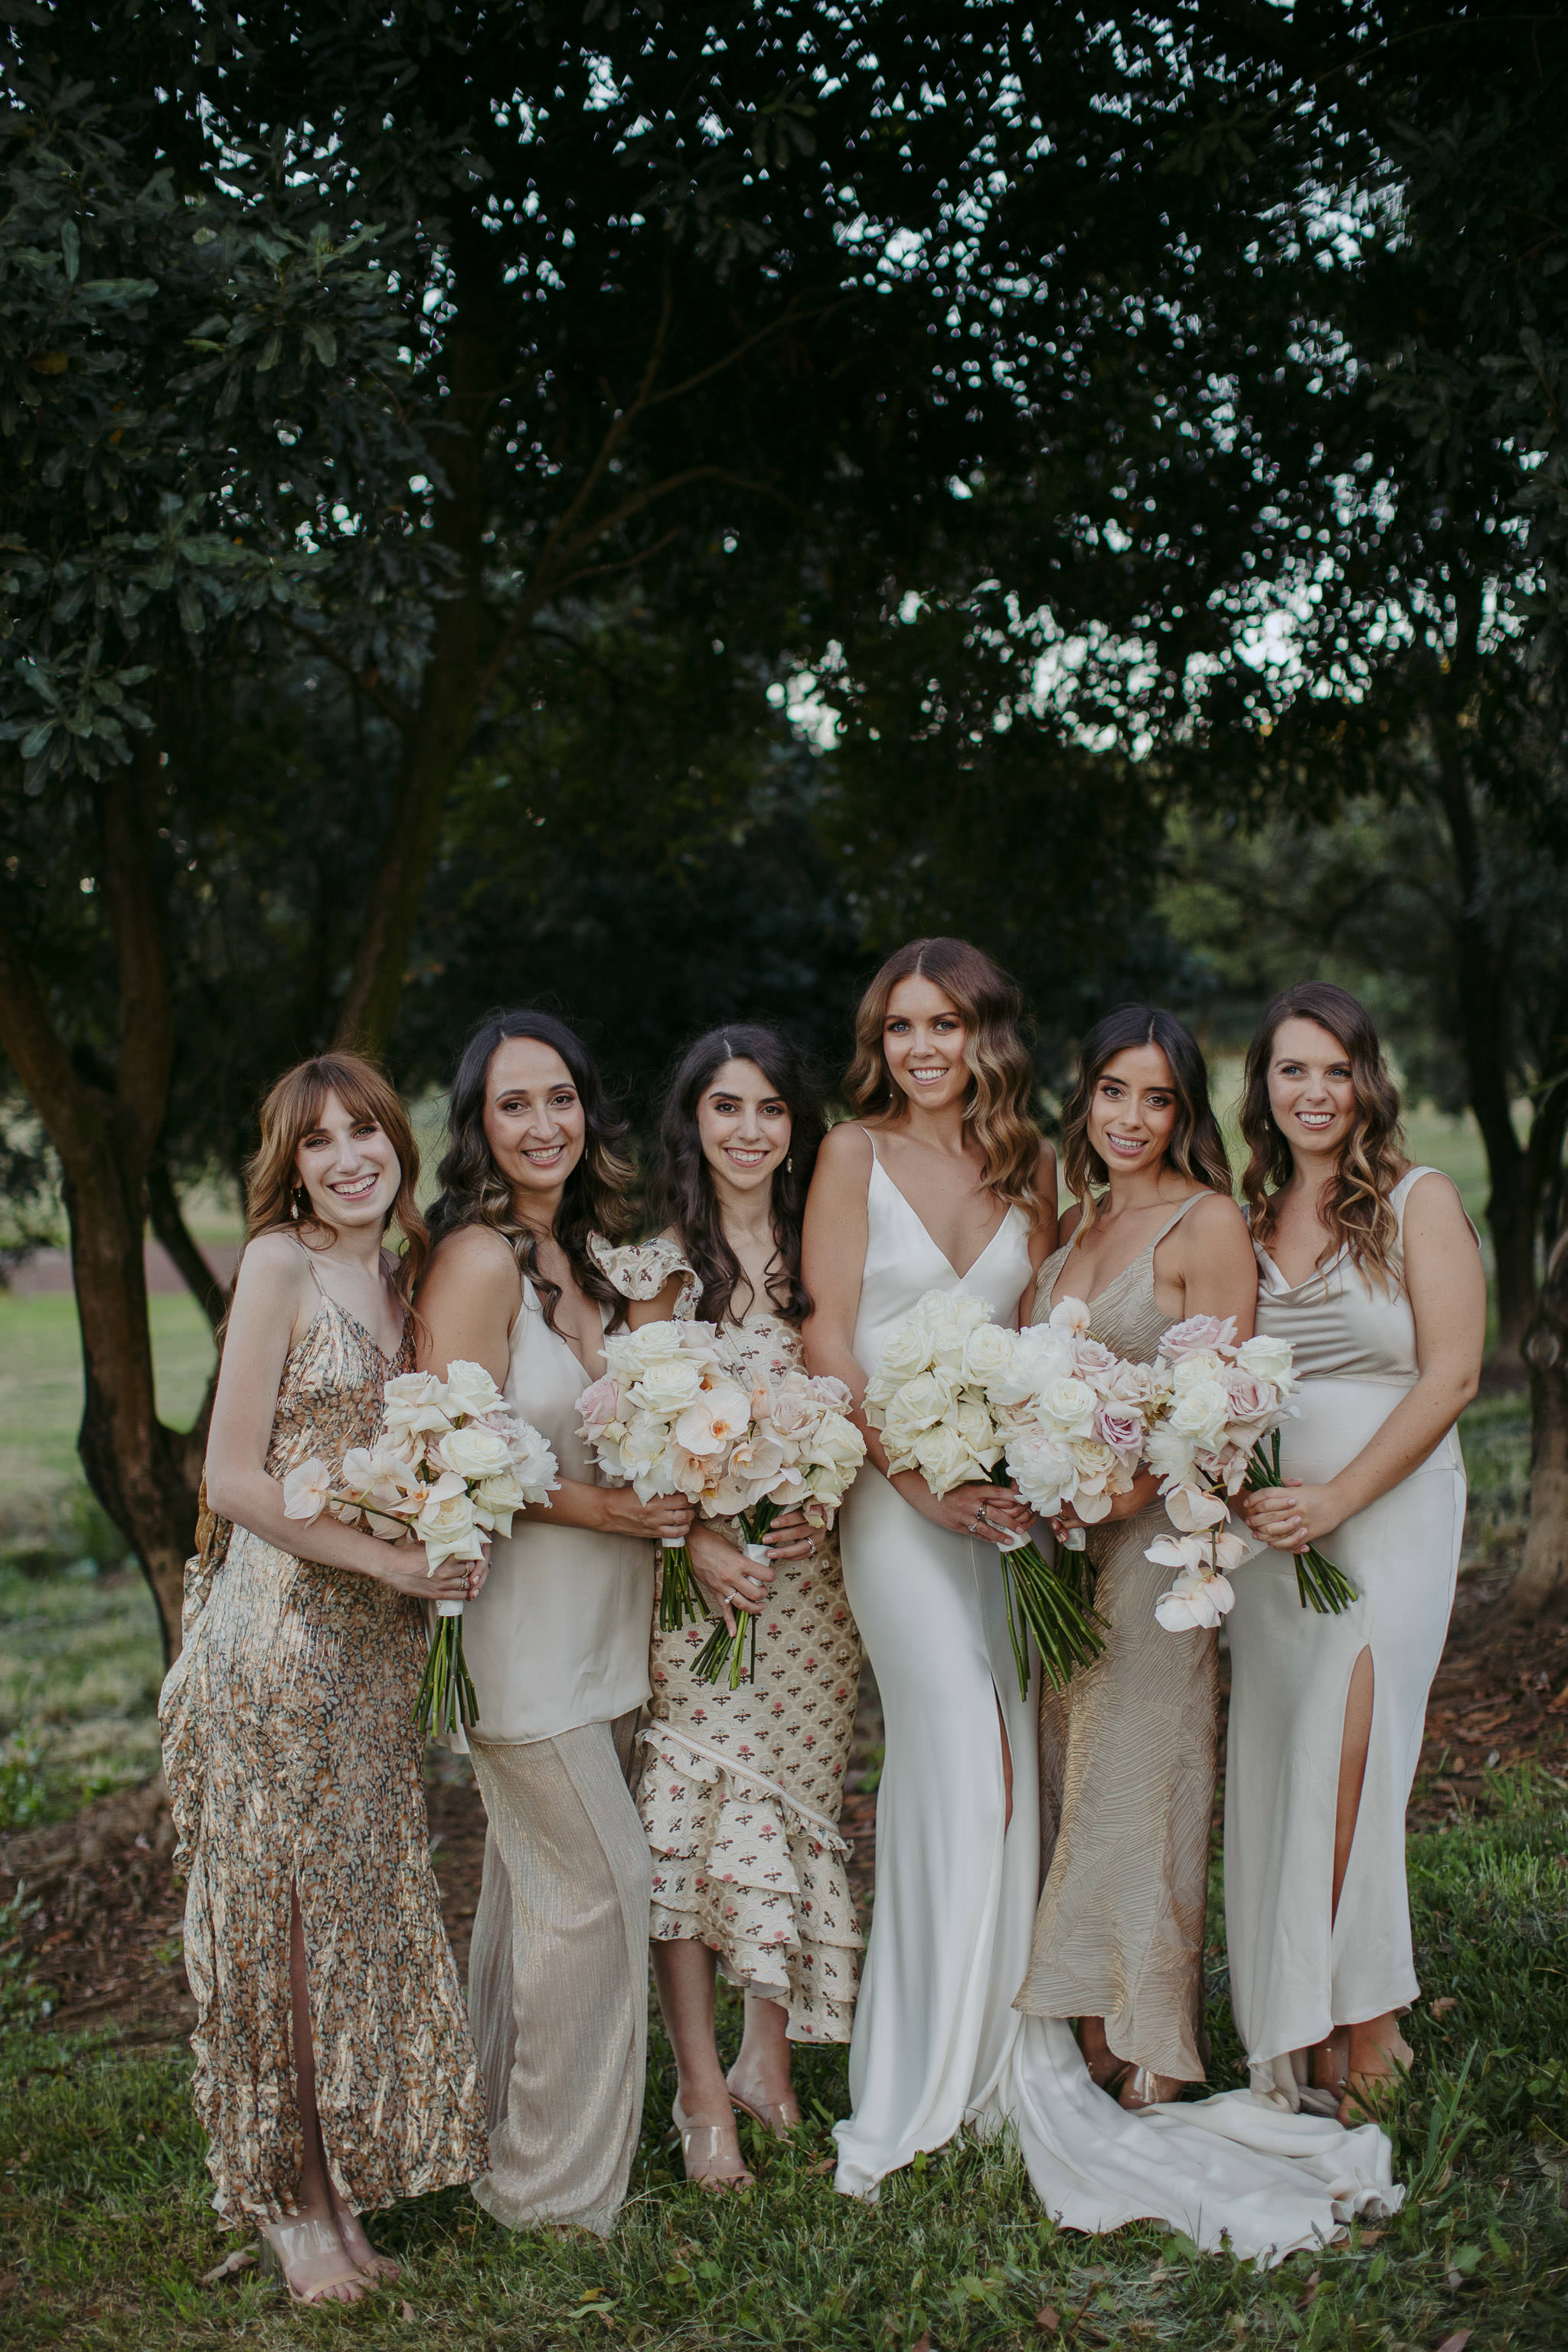 Long stem wedding bouquets in neutral tones